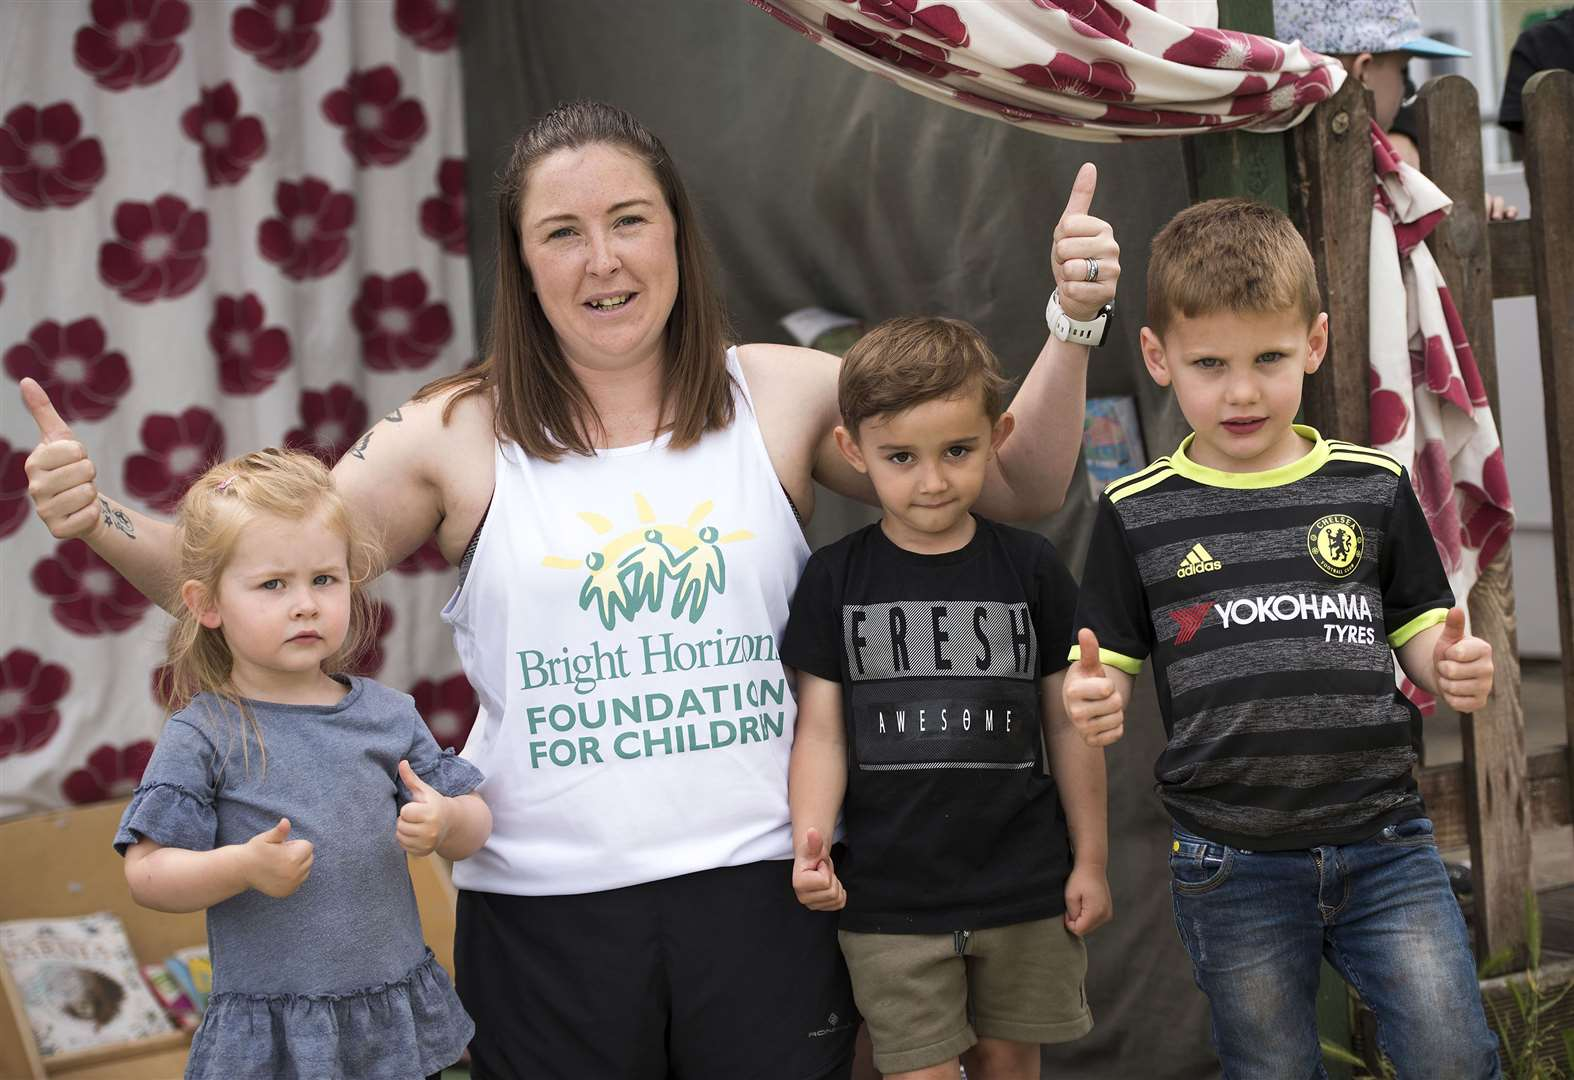 Great Cornard nursery manager to run 10 marathons in 10 days in aid of Bright Horizons